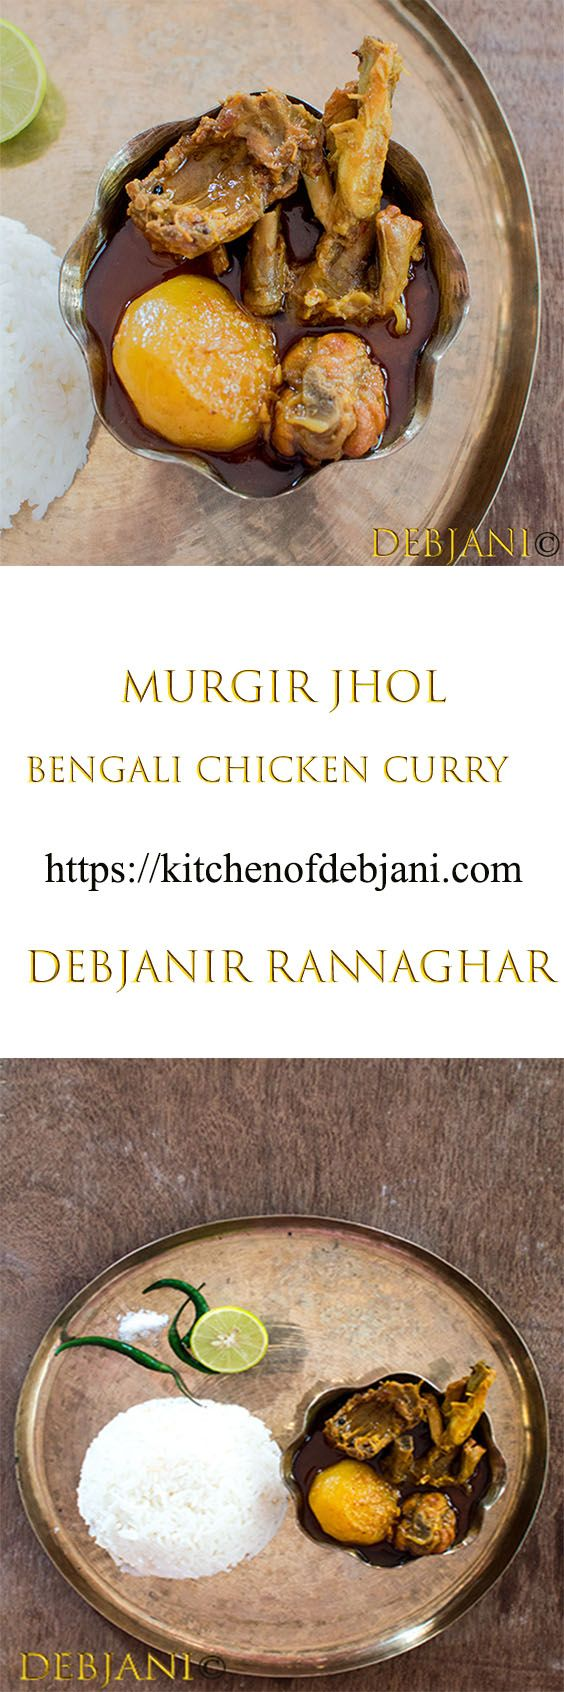 Robibarer Murgir Jhol from my Mother\'s Kitchen | Recipe | Pinterest ...